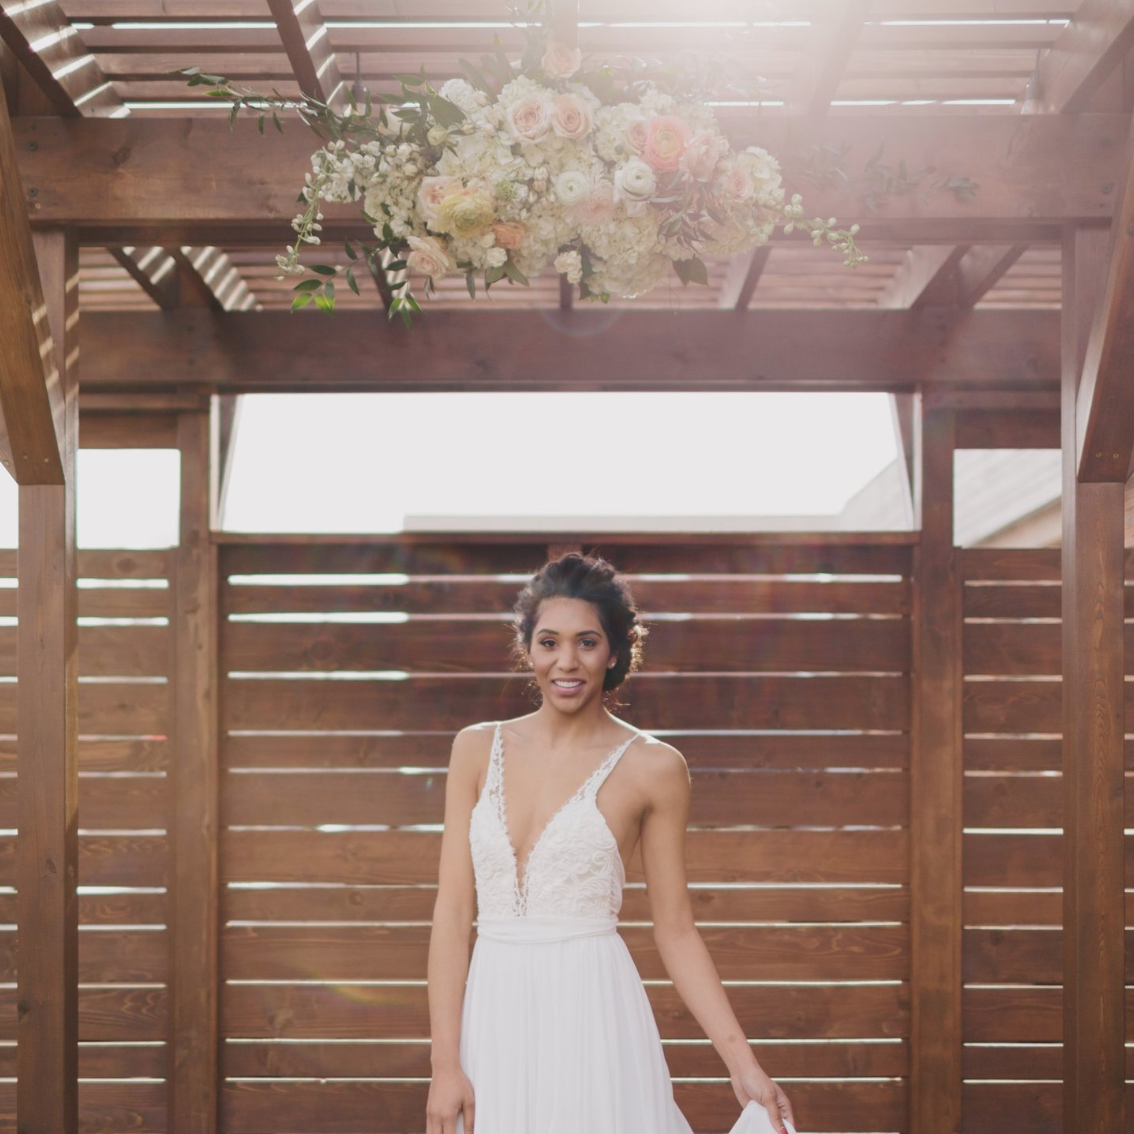 Modern Farmhouse Wedding Inspiration   8th and Main Styled Shoot